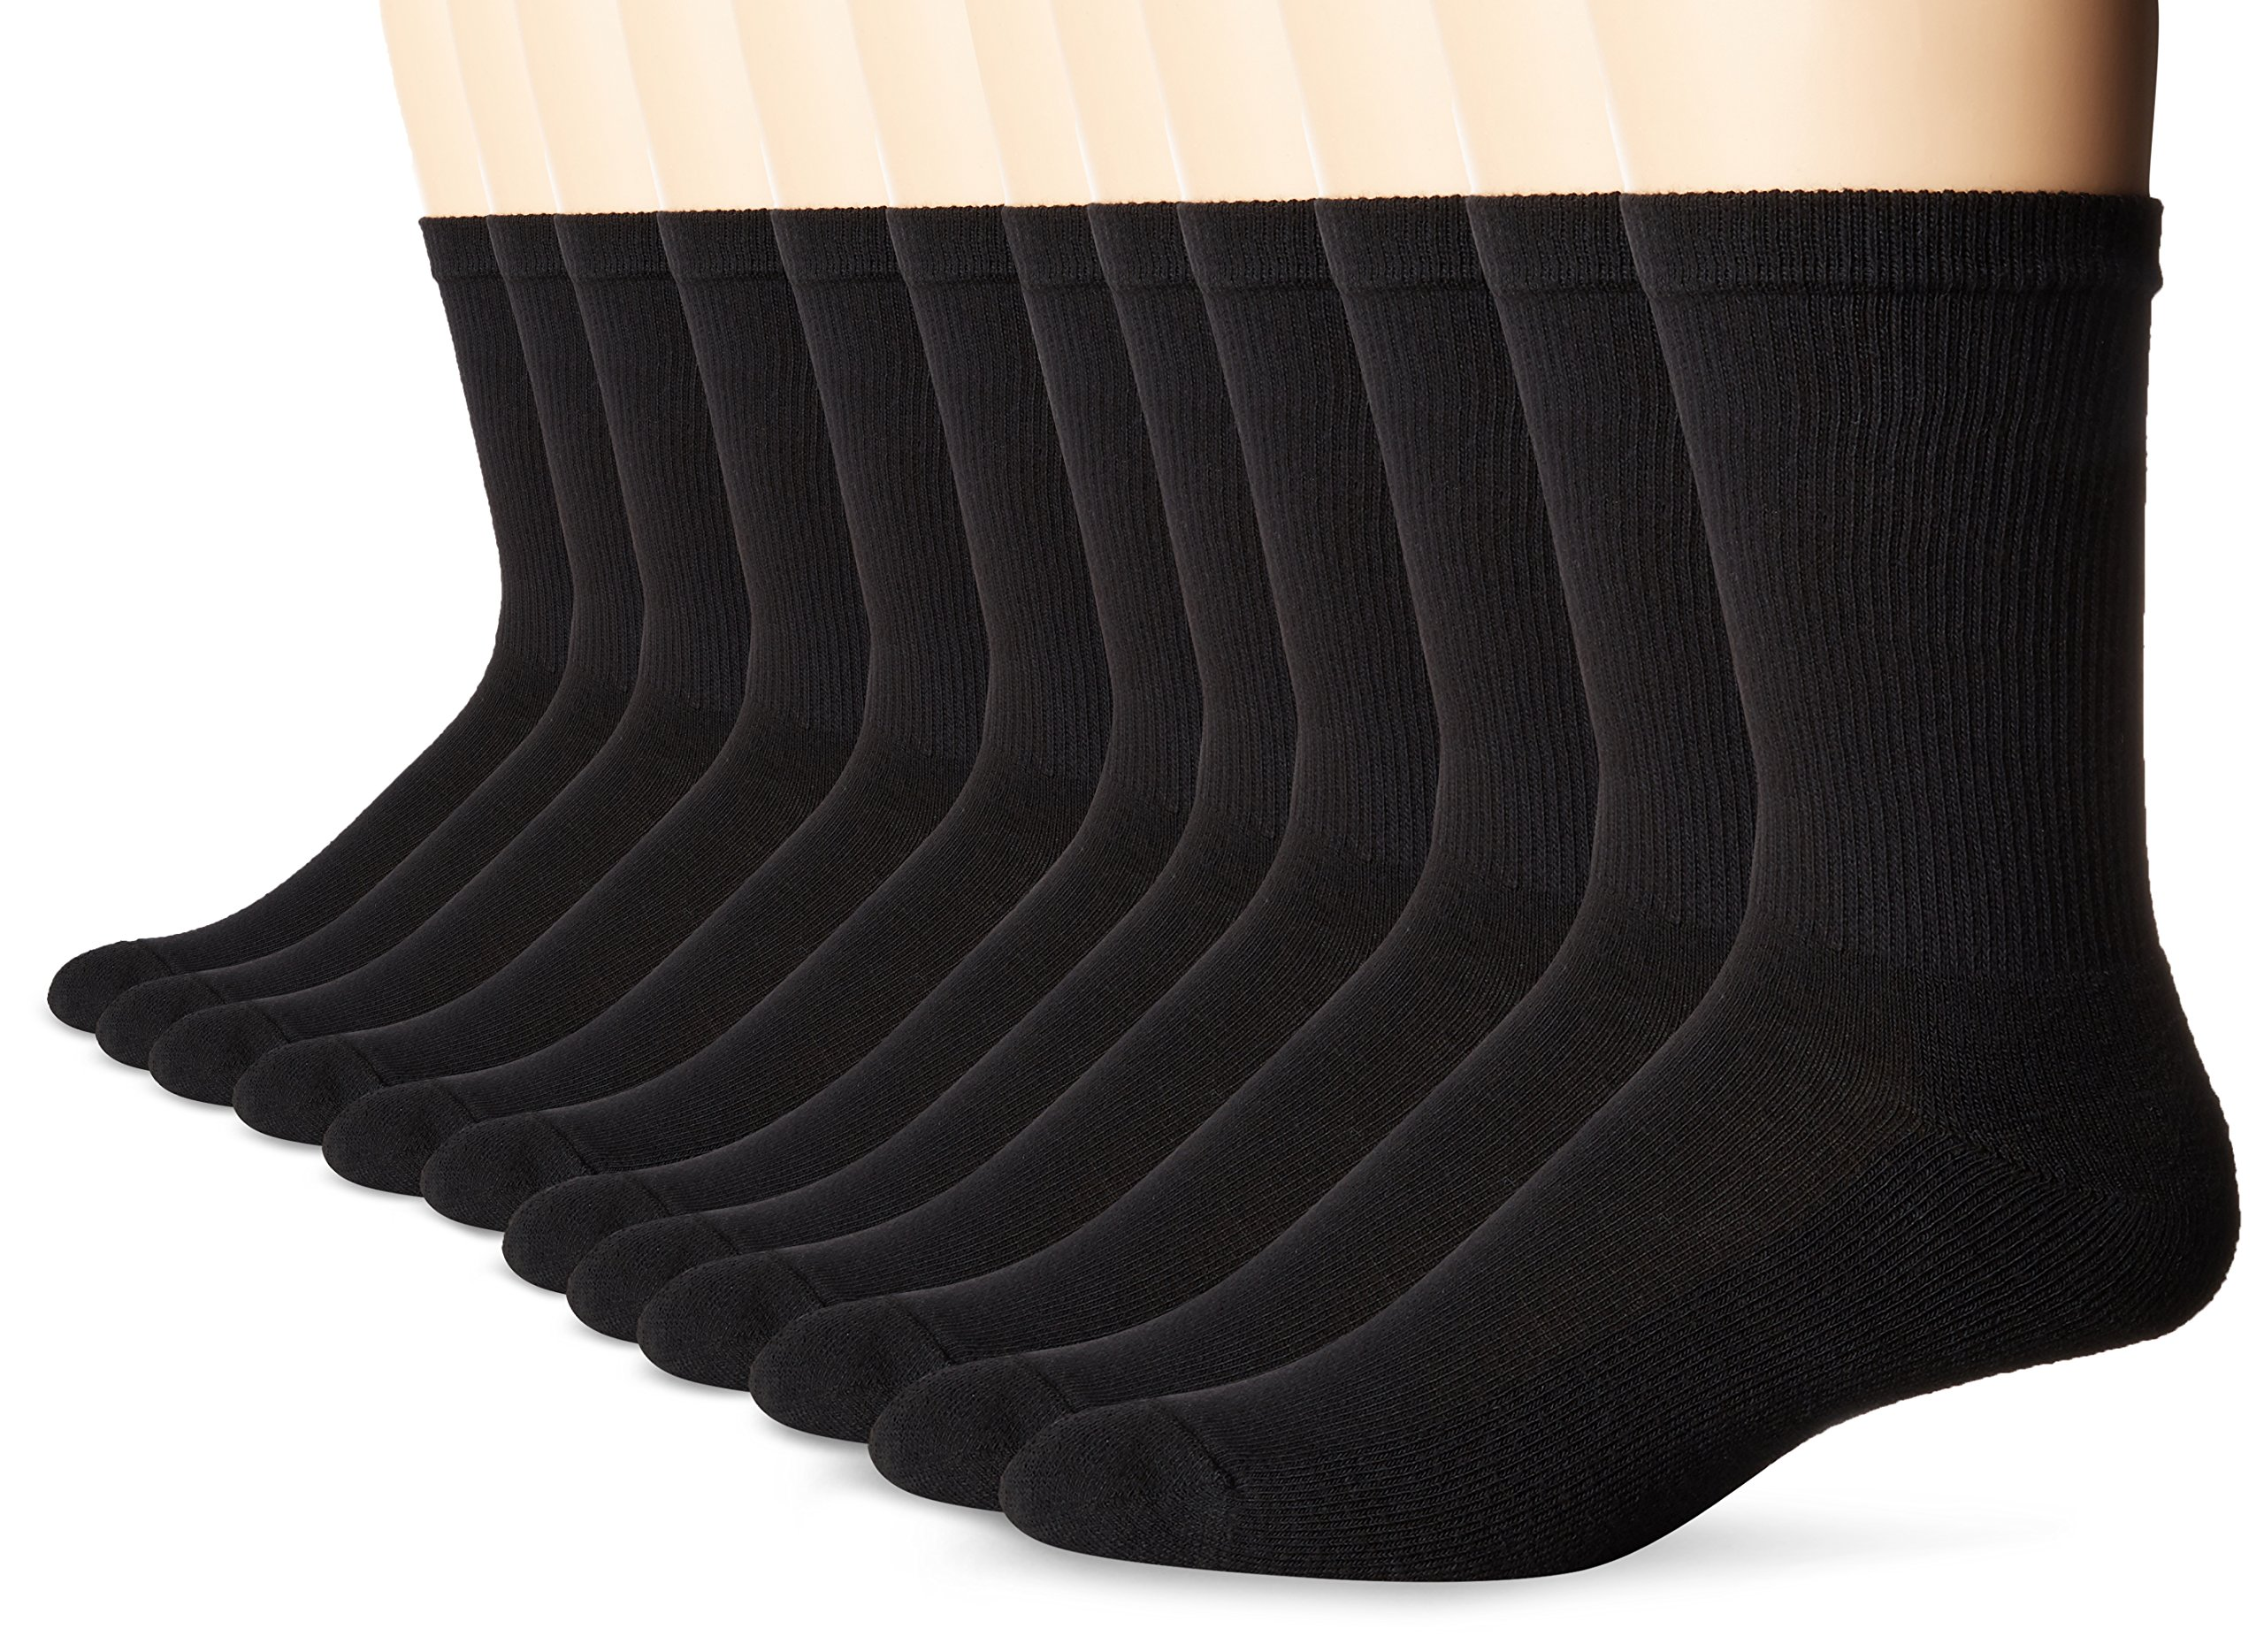 Hanes Men's Active Cool 12-Pack Crew Socks, Black, Sock Size: 10-13 Shoe Size: 6-12 by Hanes